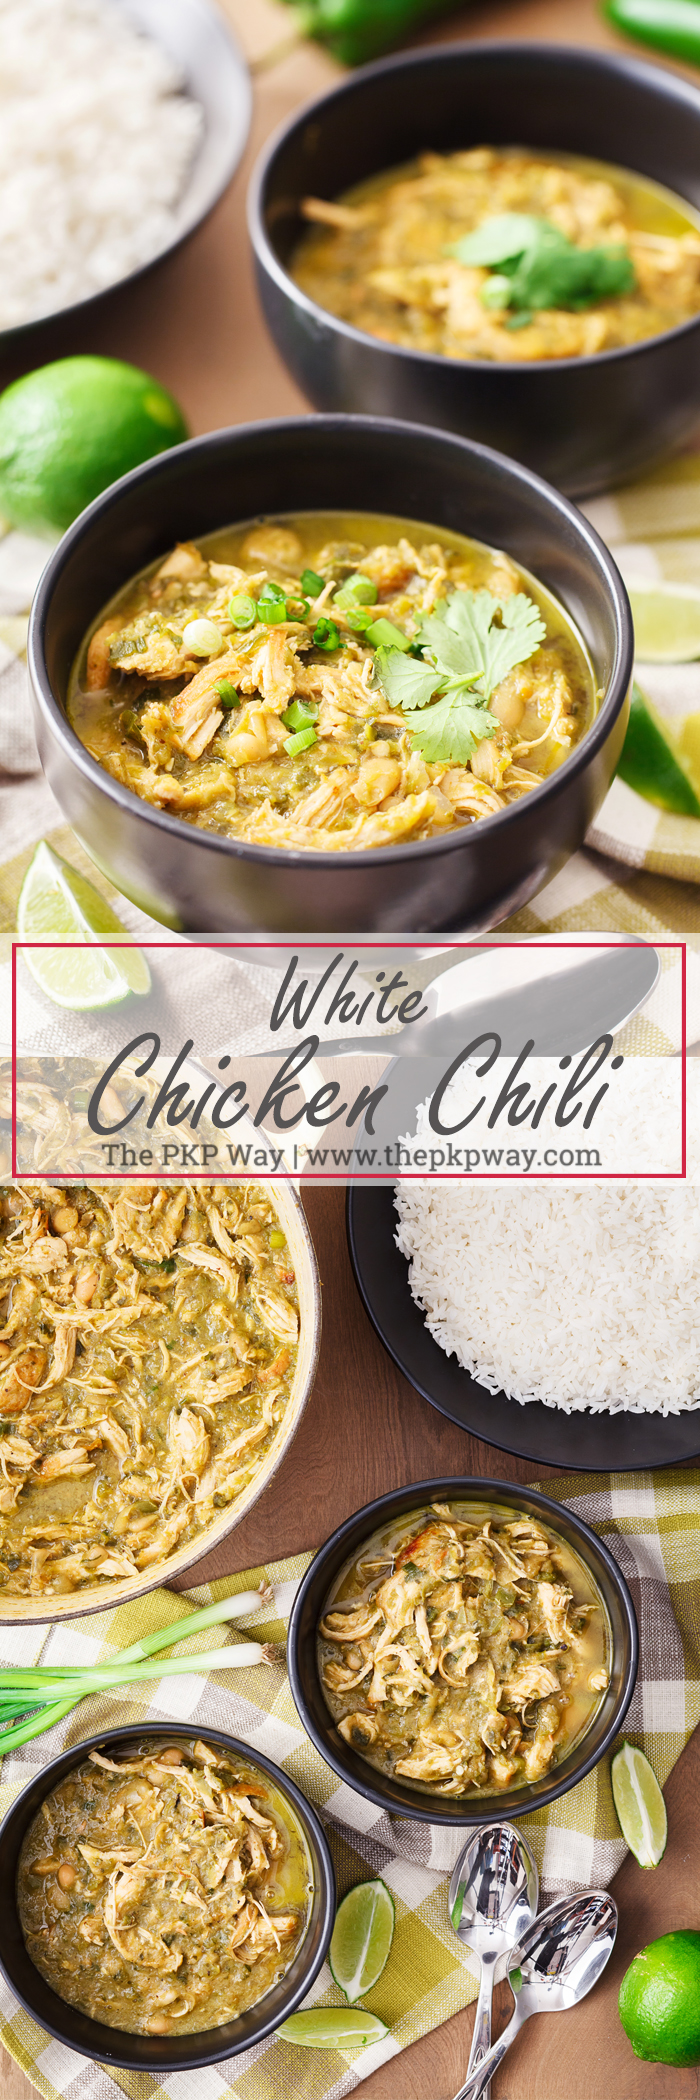 Thick and flavorful White Chicken Chili has THREE kinds of chilies and flavor-building steps for a mouthful of depth and complex flavors with every bite.